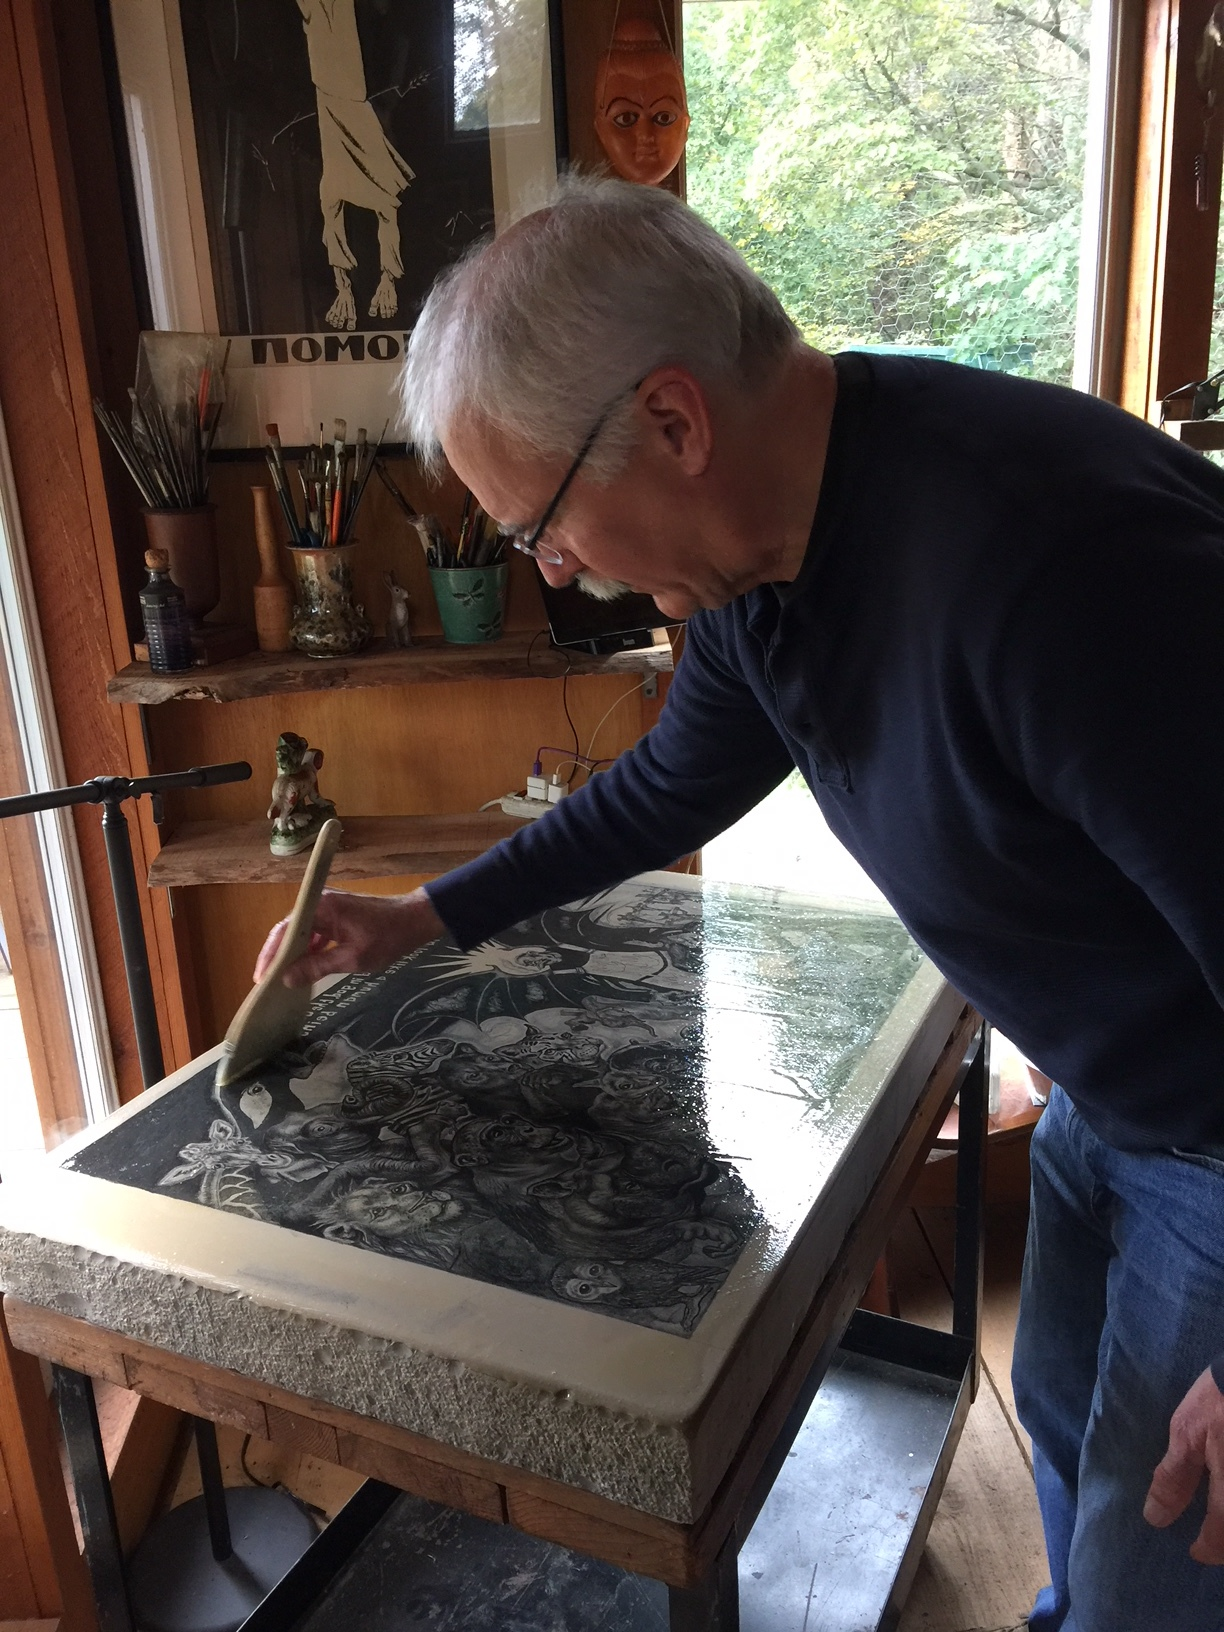 Tim etching a lithography stone in Sue Coe's studio, 2018.